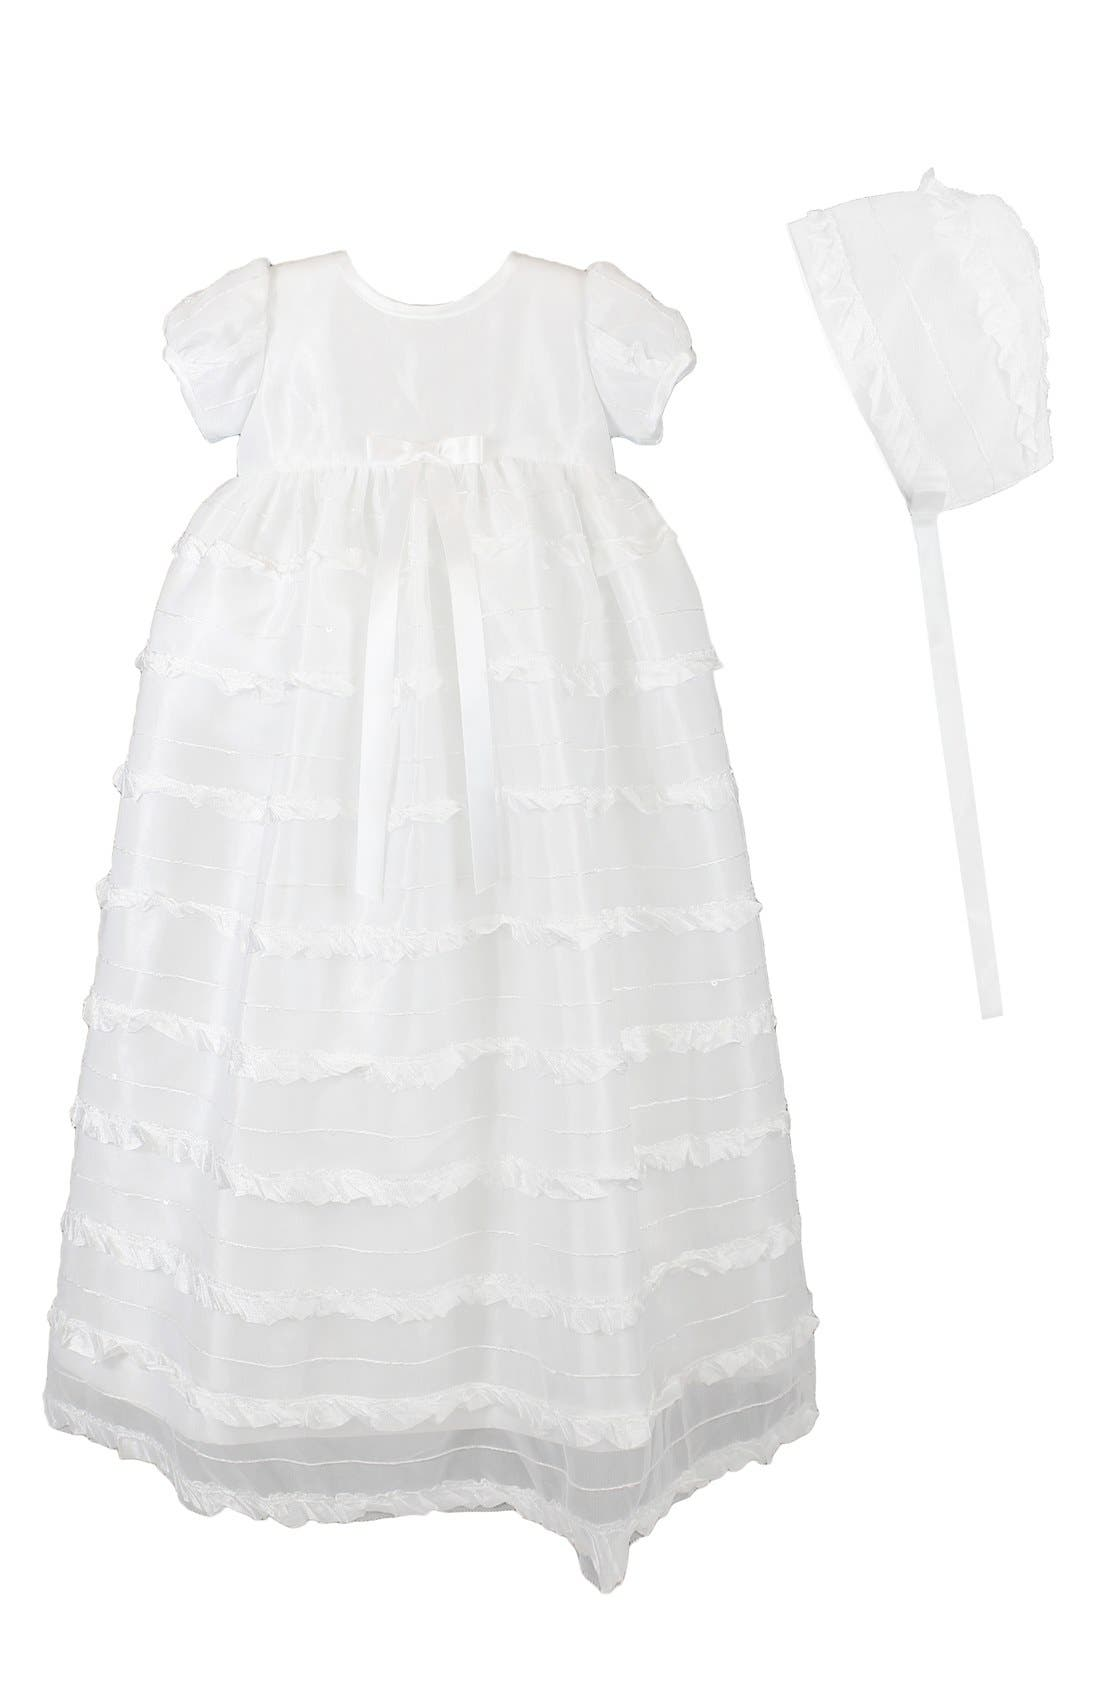 C.I. Castro & Co 'Eyelash' Christening Gown & Bonnet,                             Main thumbnail 1, color,                             White